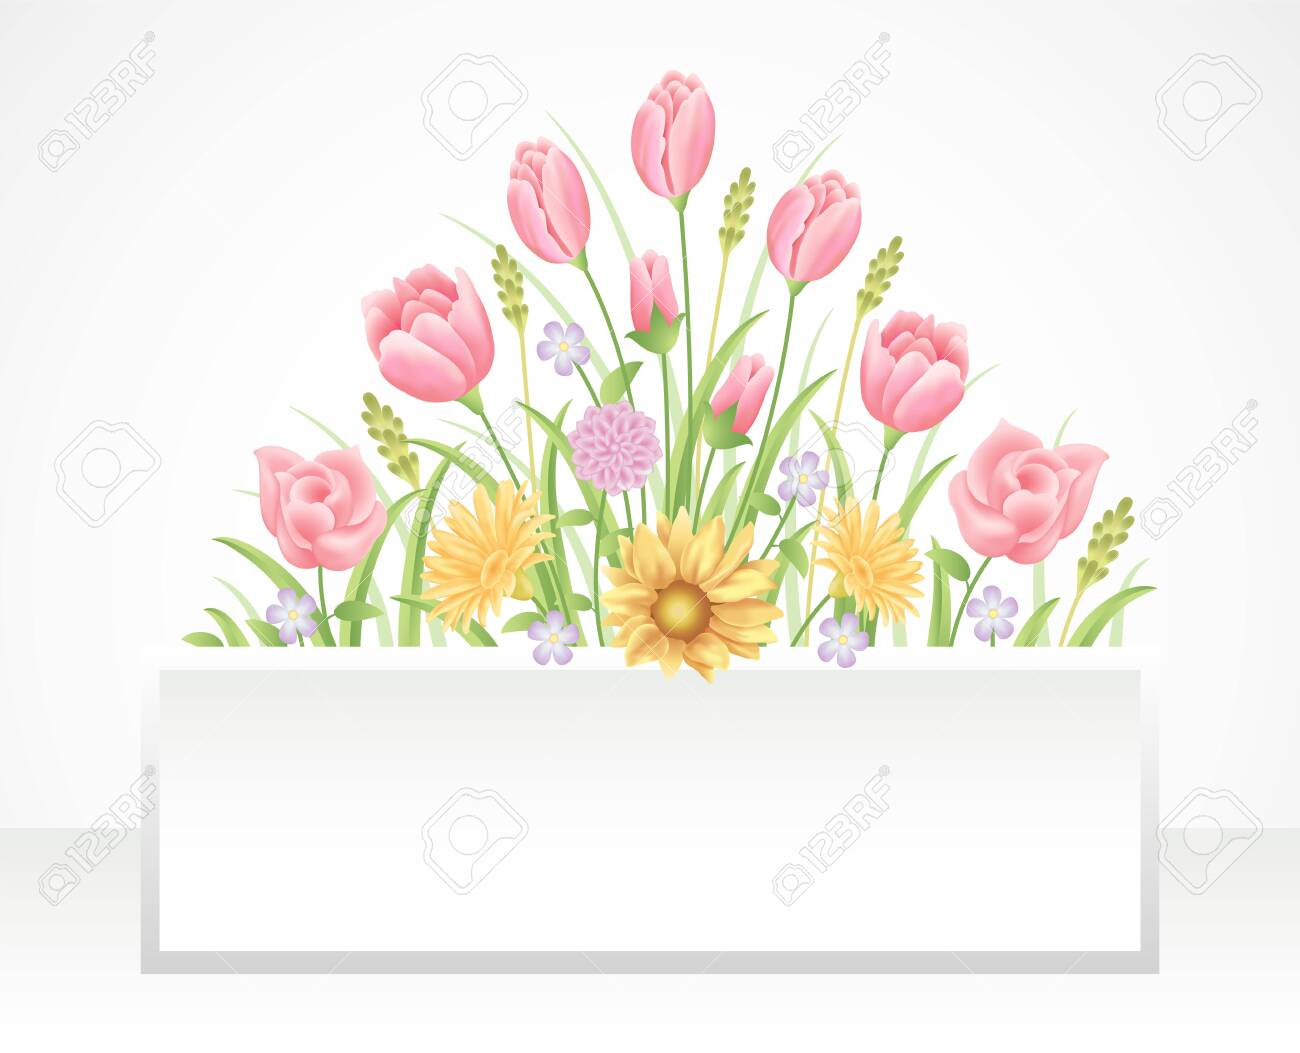 Floral frame colorful and beautiful rose flowers and leaves template decoration. - 137089937